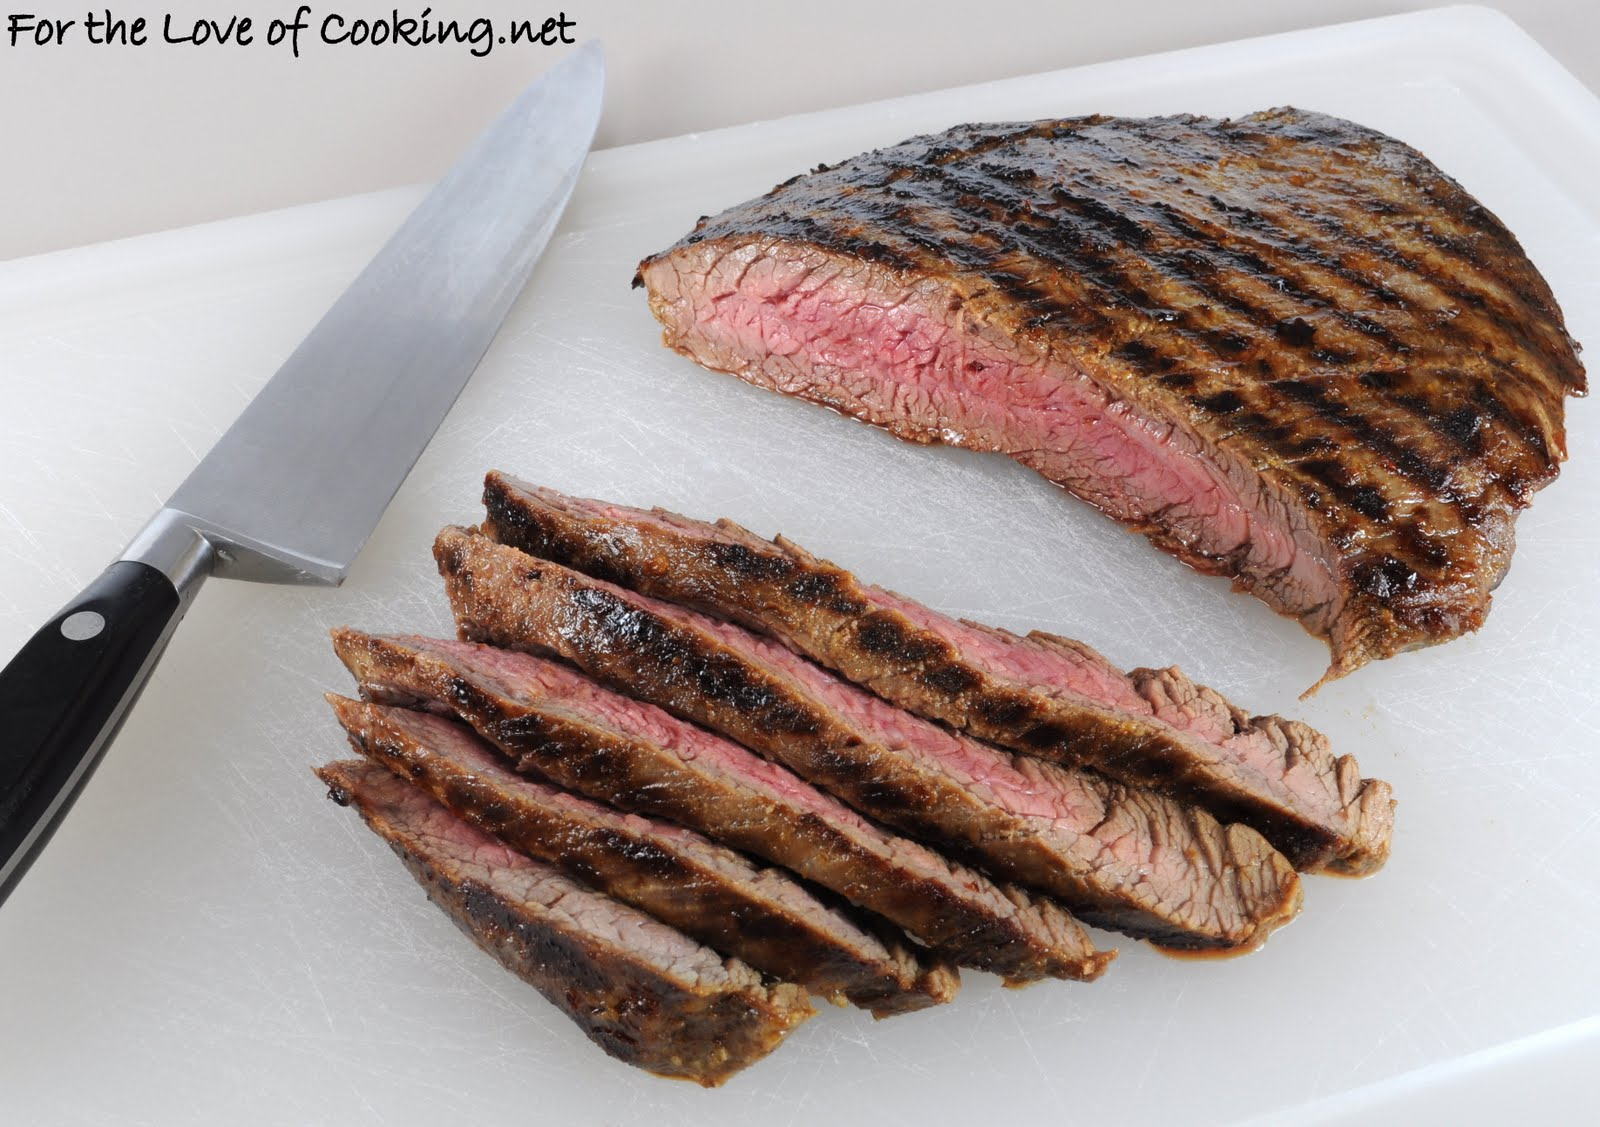 Soy Garlic Flank Steak   For the Love of Cooking